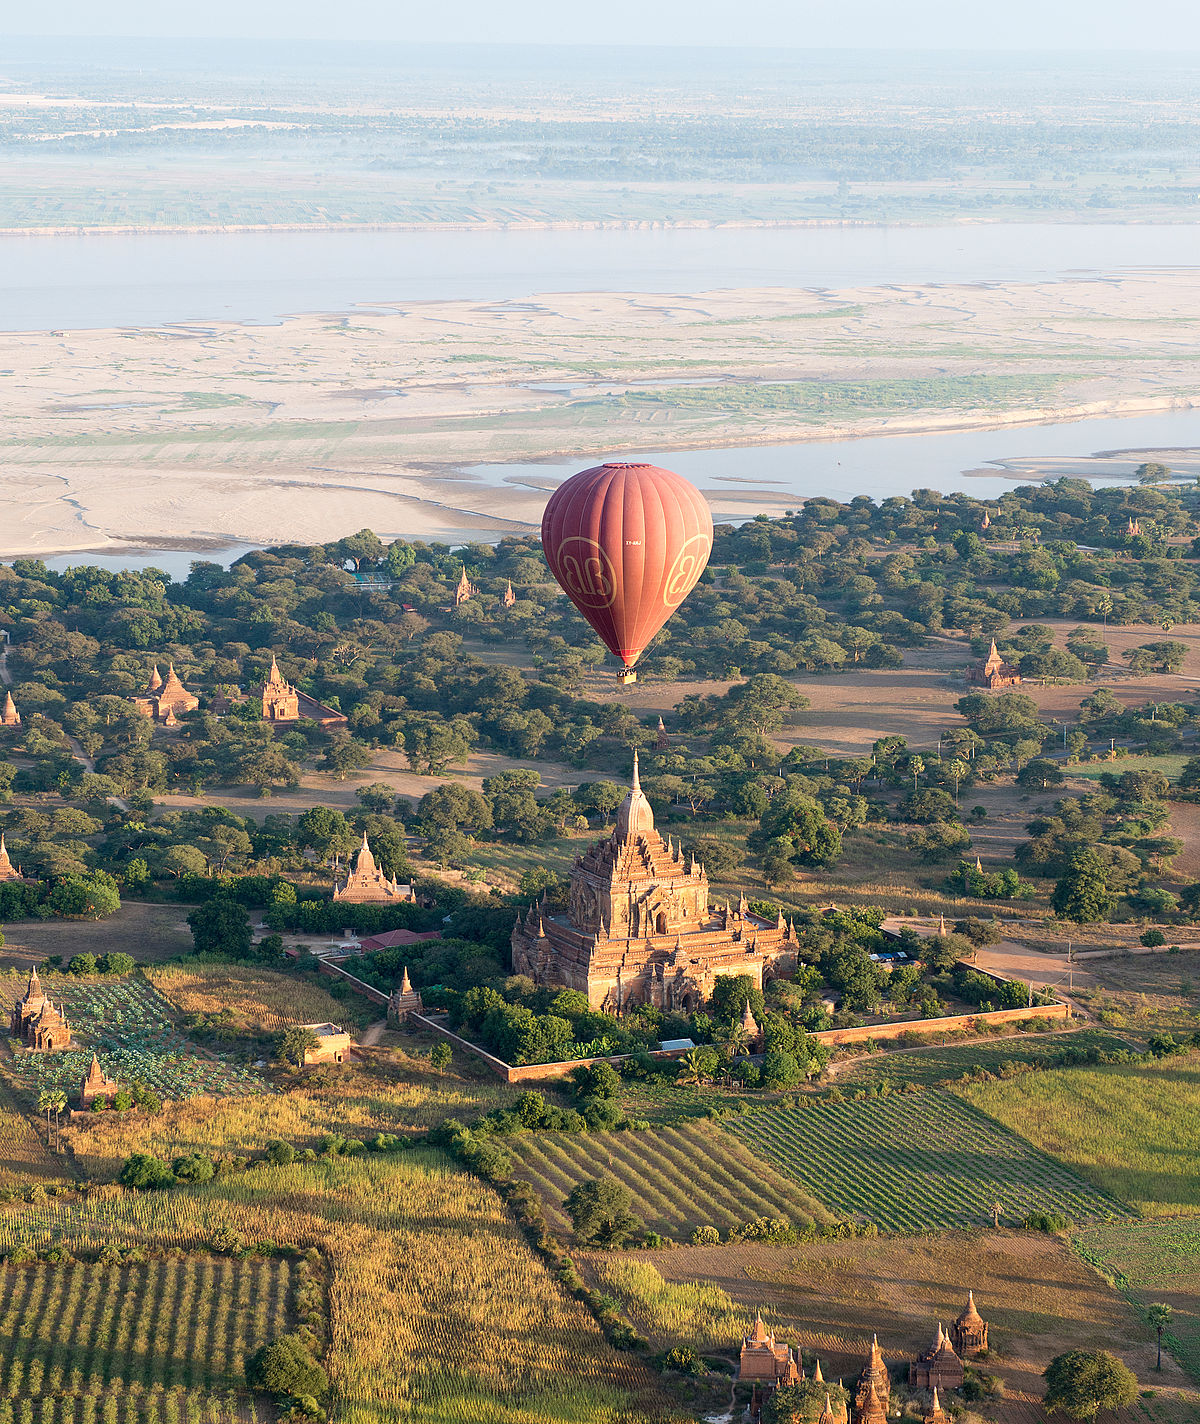 1200px-Hot_air_balloon_over_a_pagoda_in_Bagan.jpg